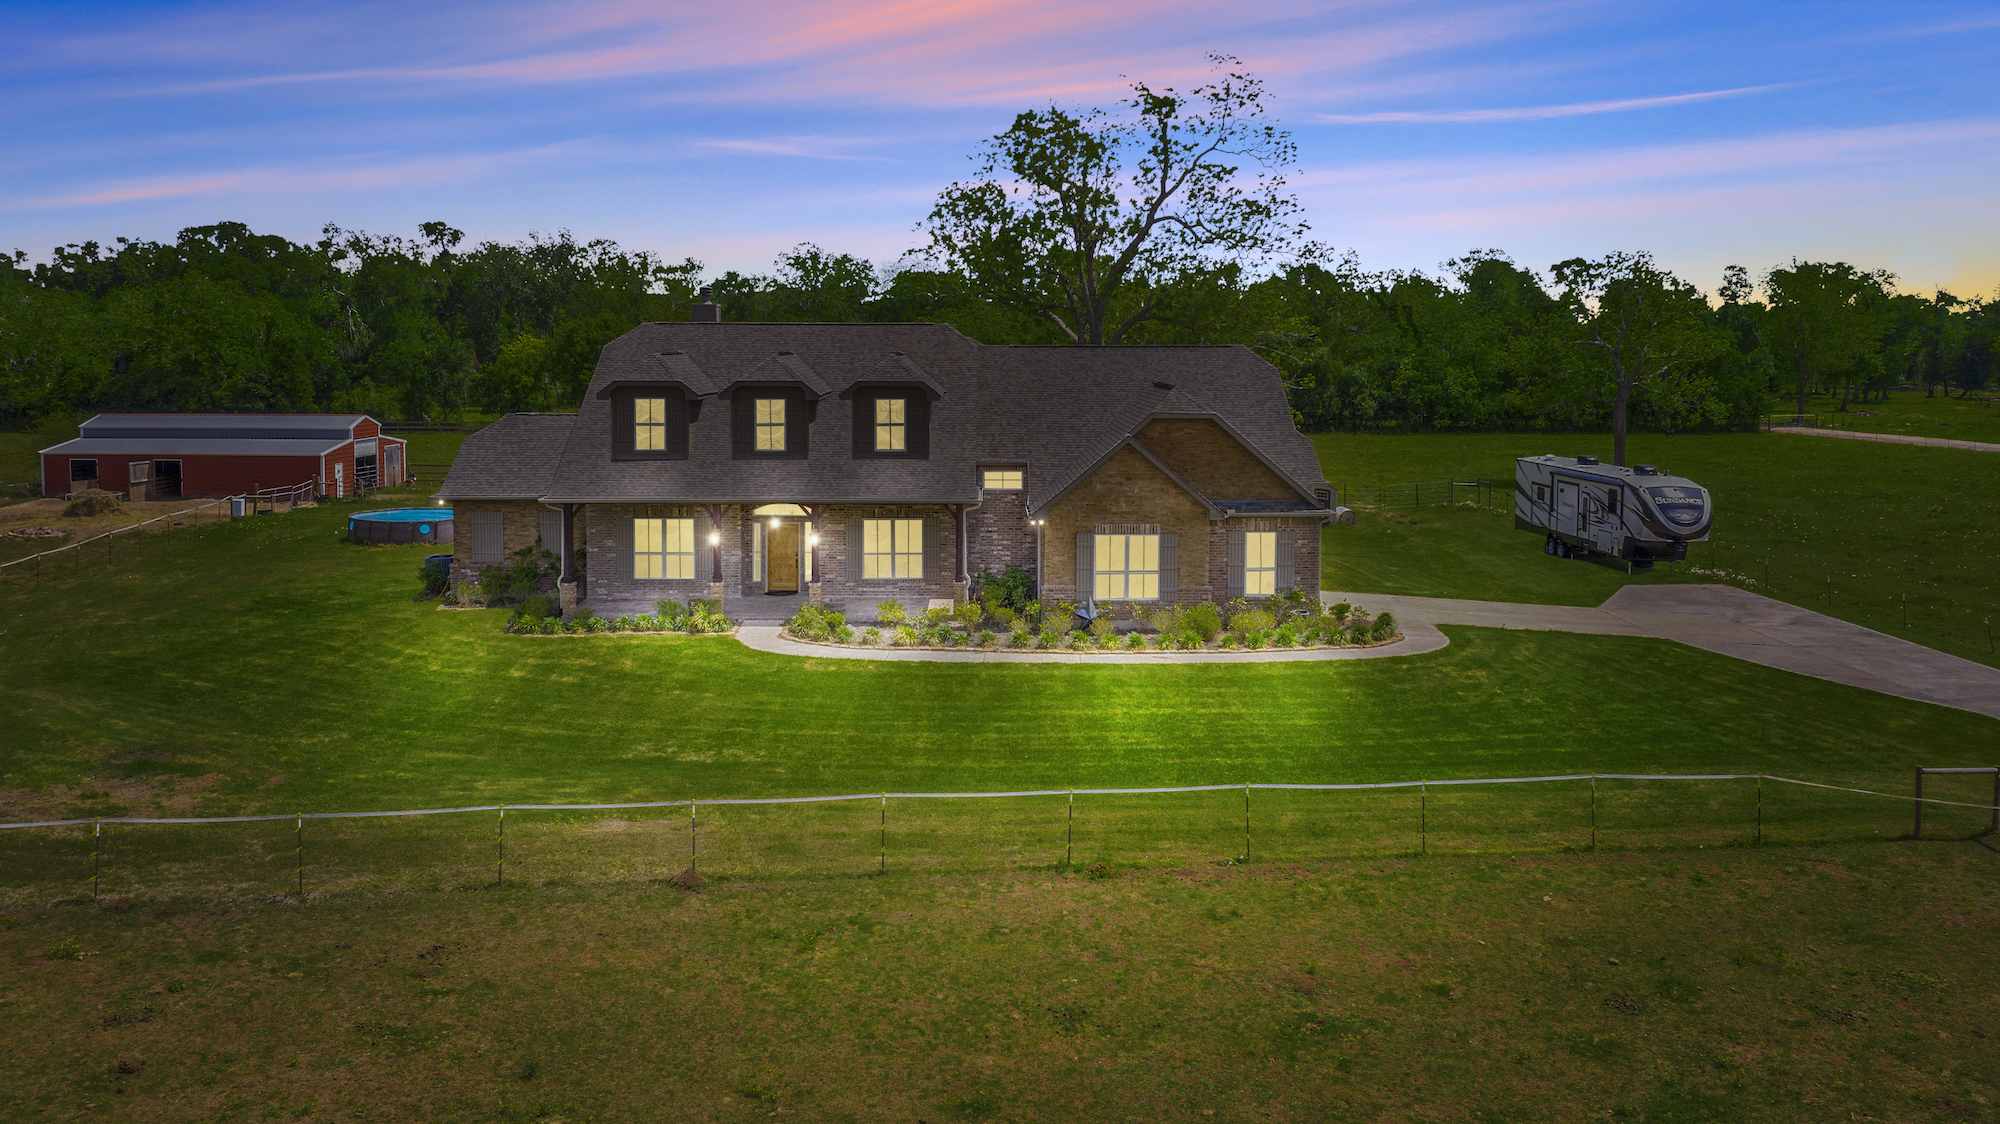 Custom Country Home with Acreage in Sealy - Image 2 of 46